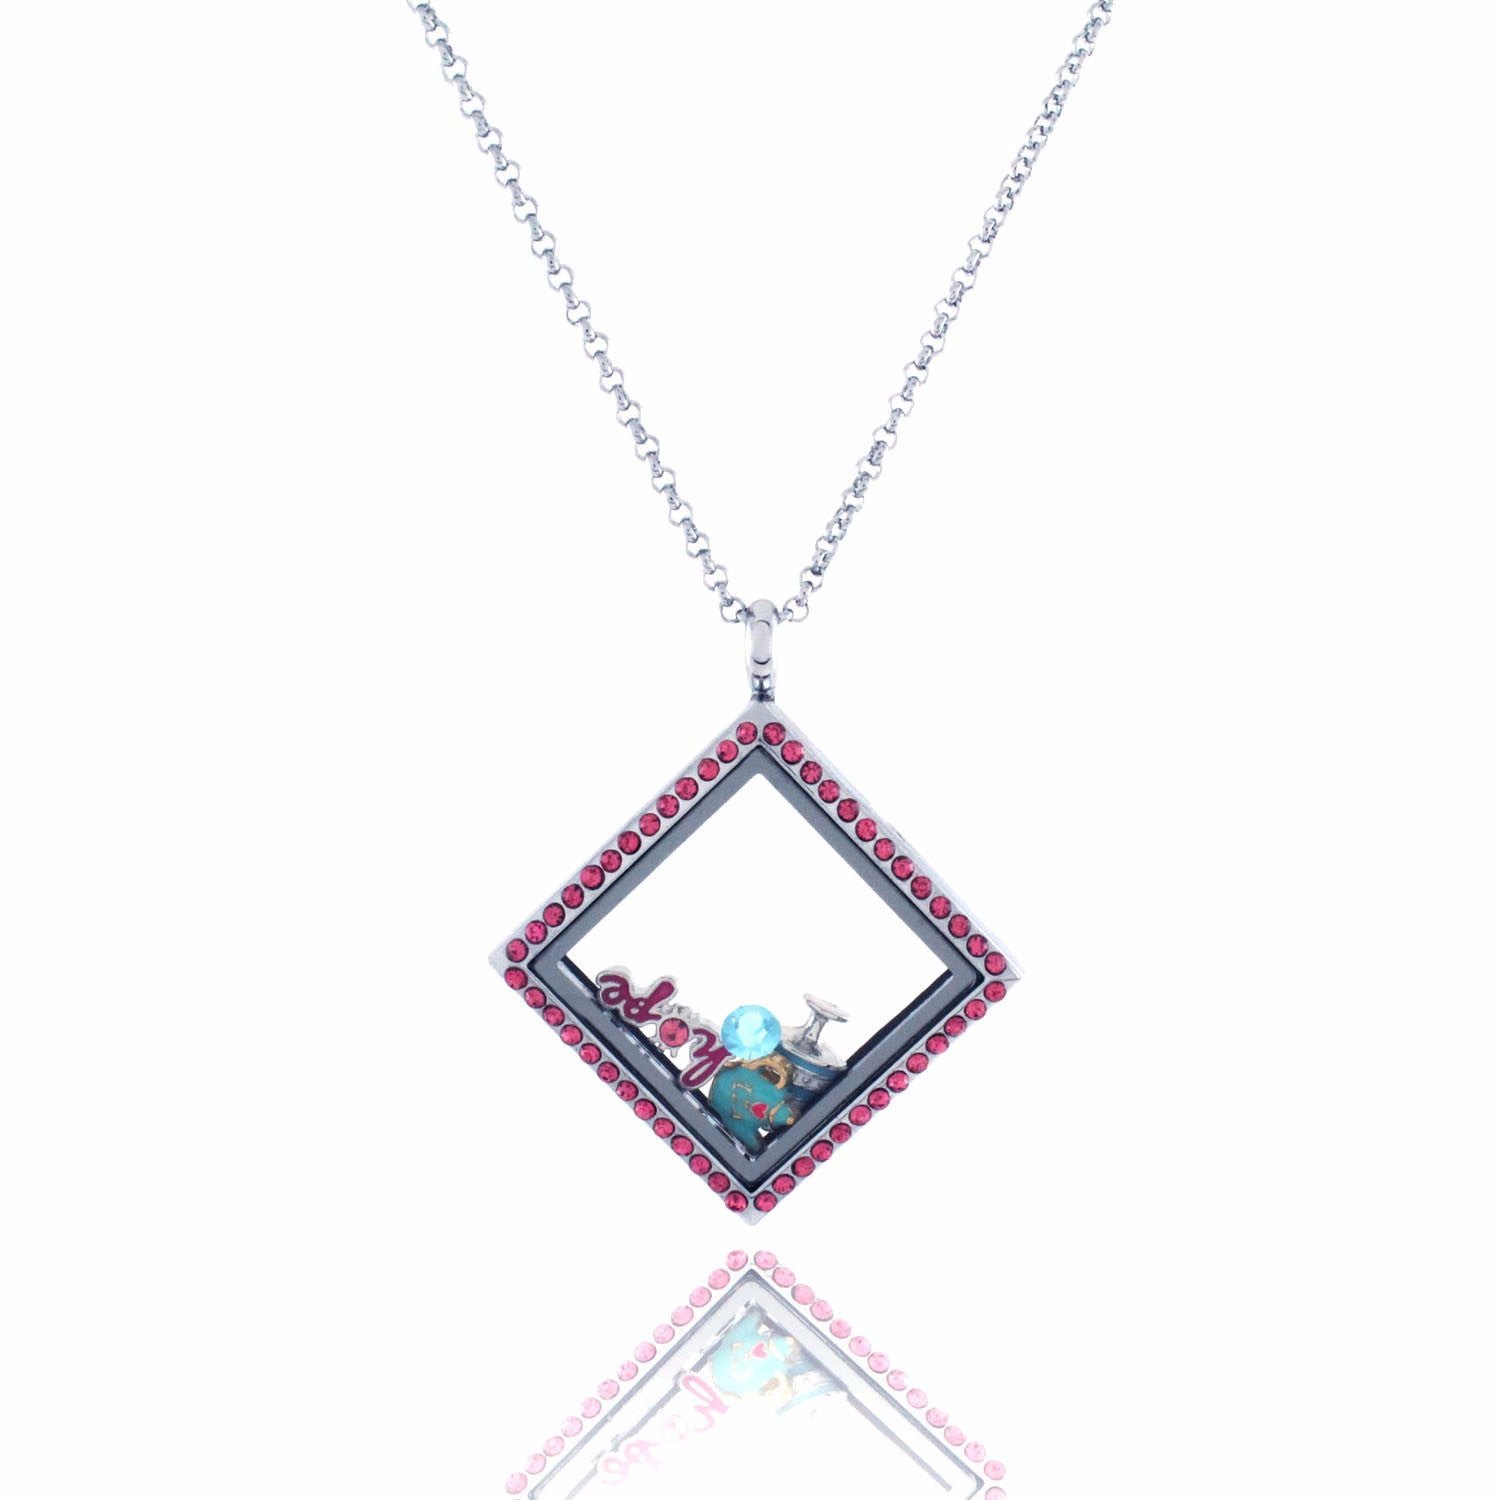 Floating Locket Necklace with Choice of 6 Charms and Matching Chain (Pink Rhinestone Diamond)